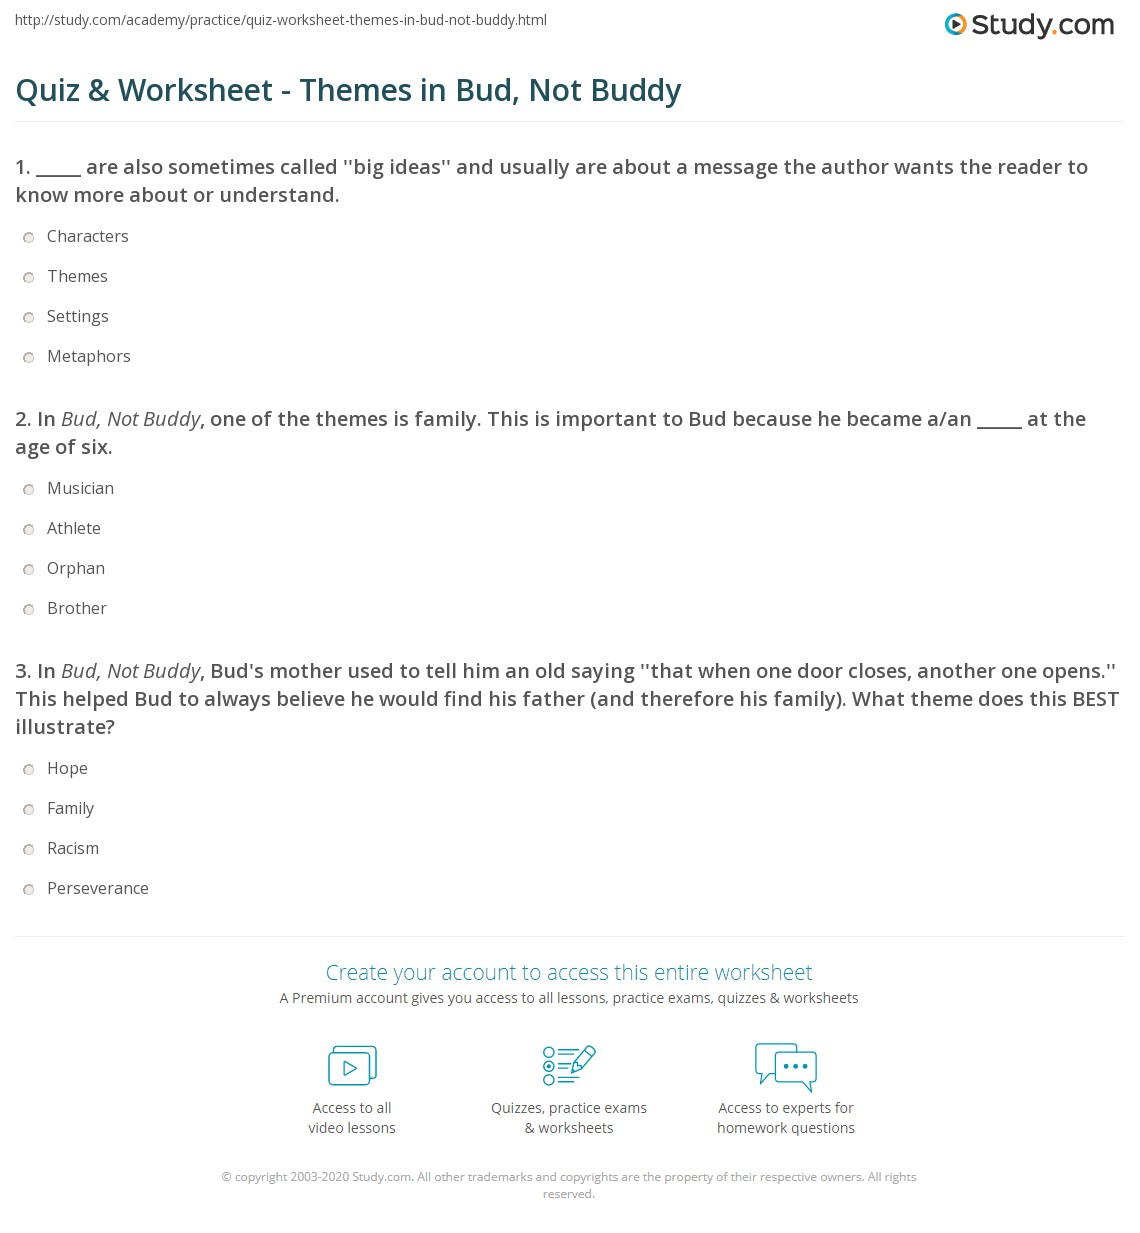 Bud not buddy worksheet answers